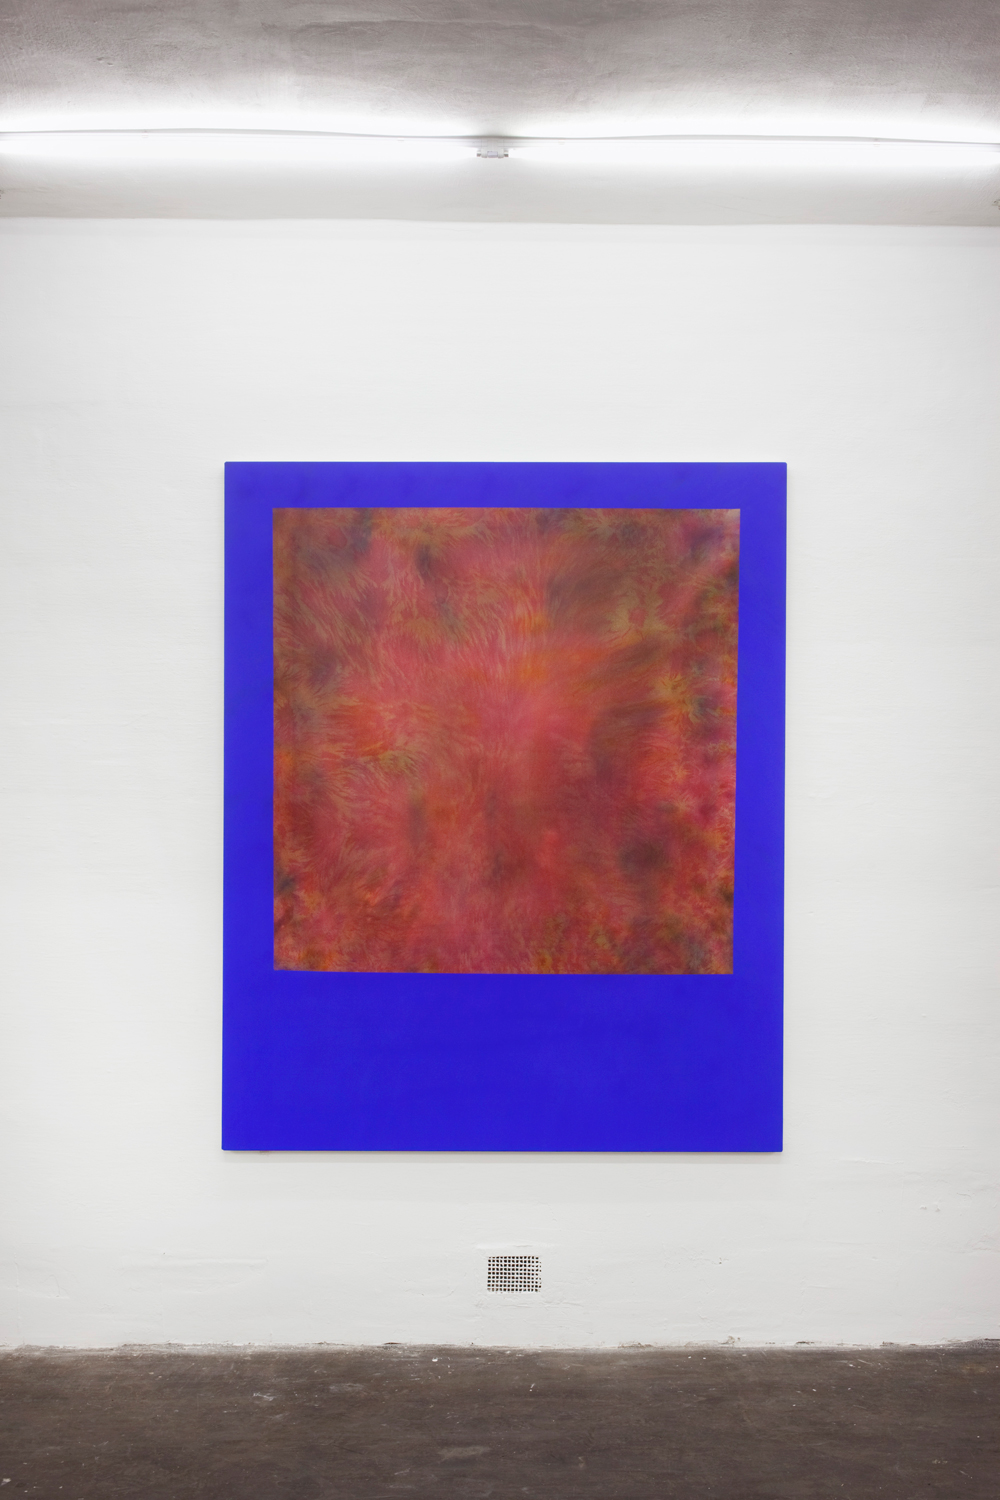 Untitled, 2013, silk paint, ink and pigment on sailing canvas, 179 x 145 cm